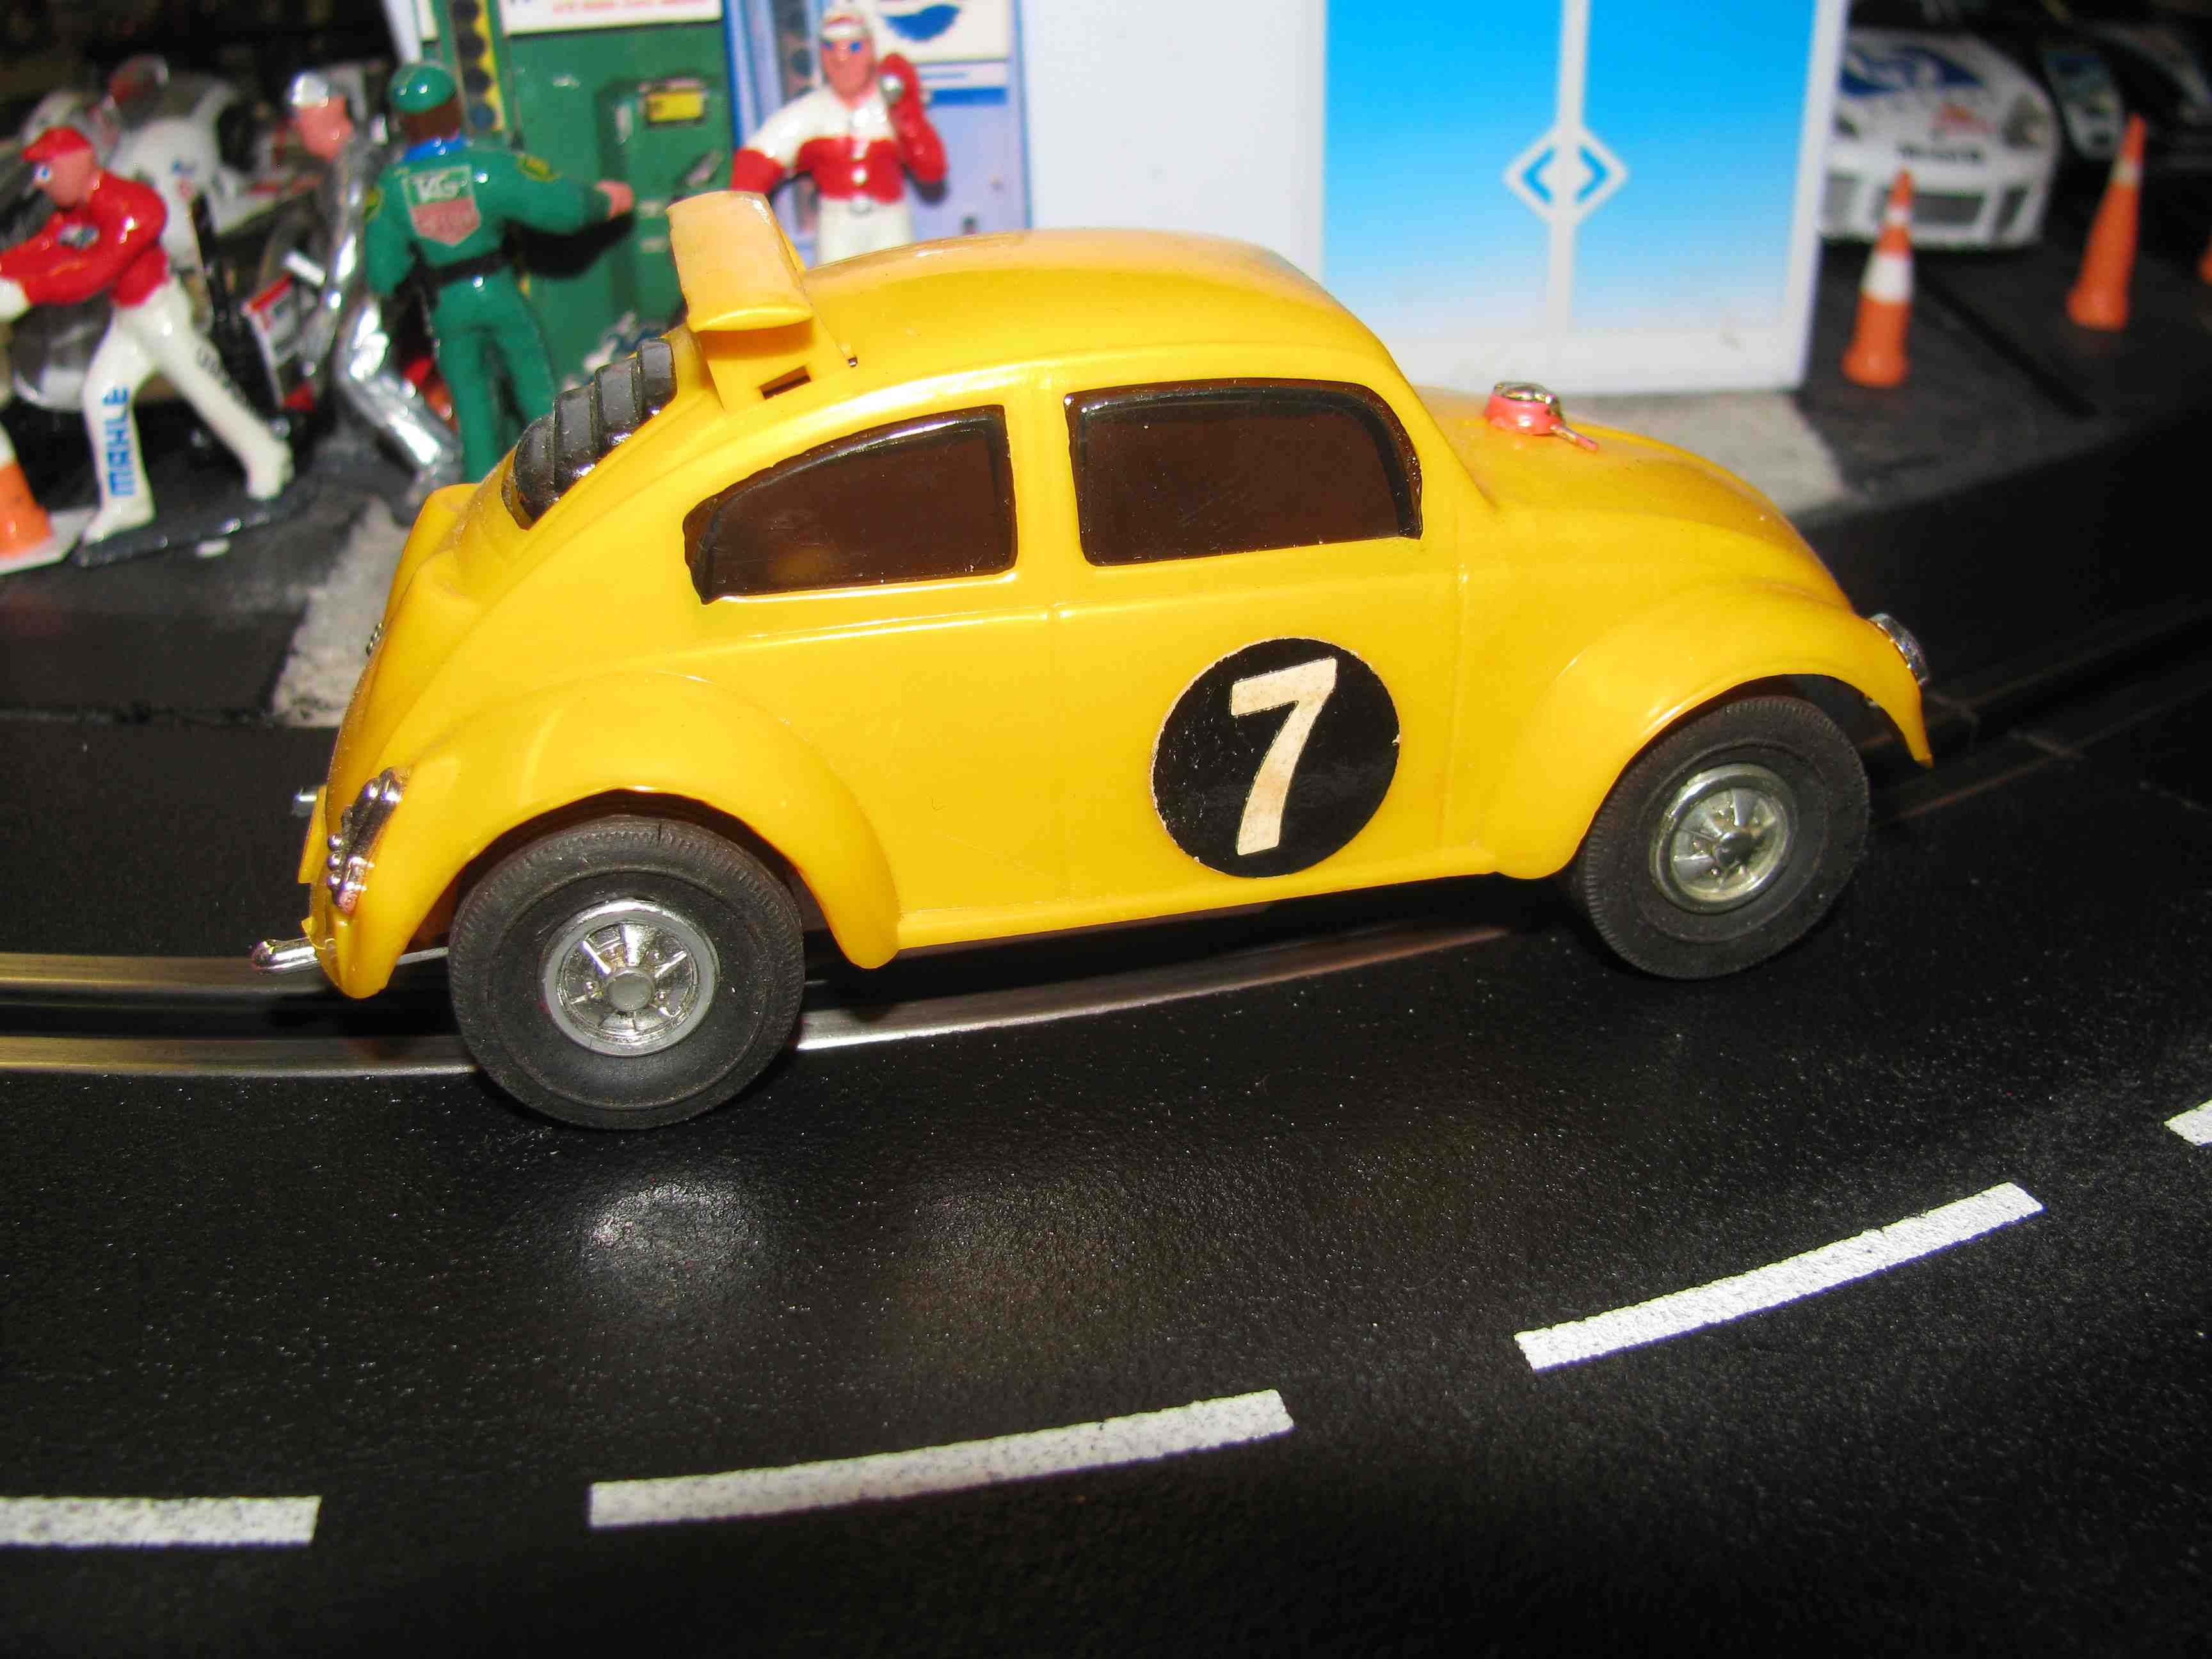 Eldon Volkswagen super beetle Racer Slot Car 1/32 Scale, Yellow, Car 7